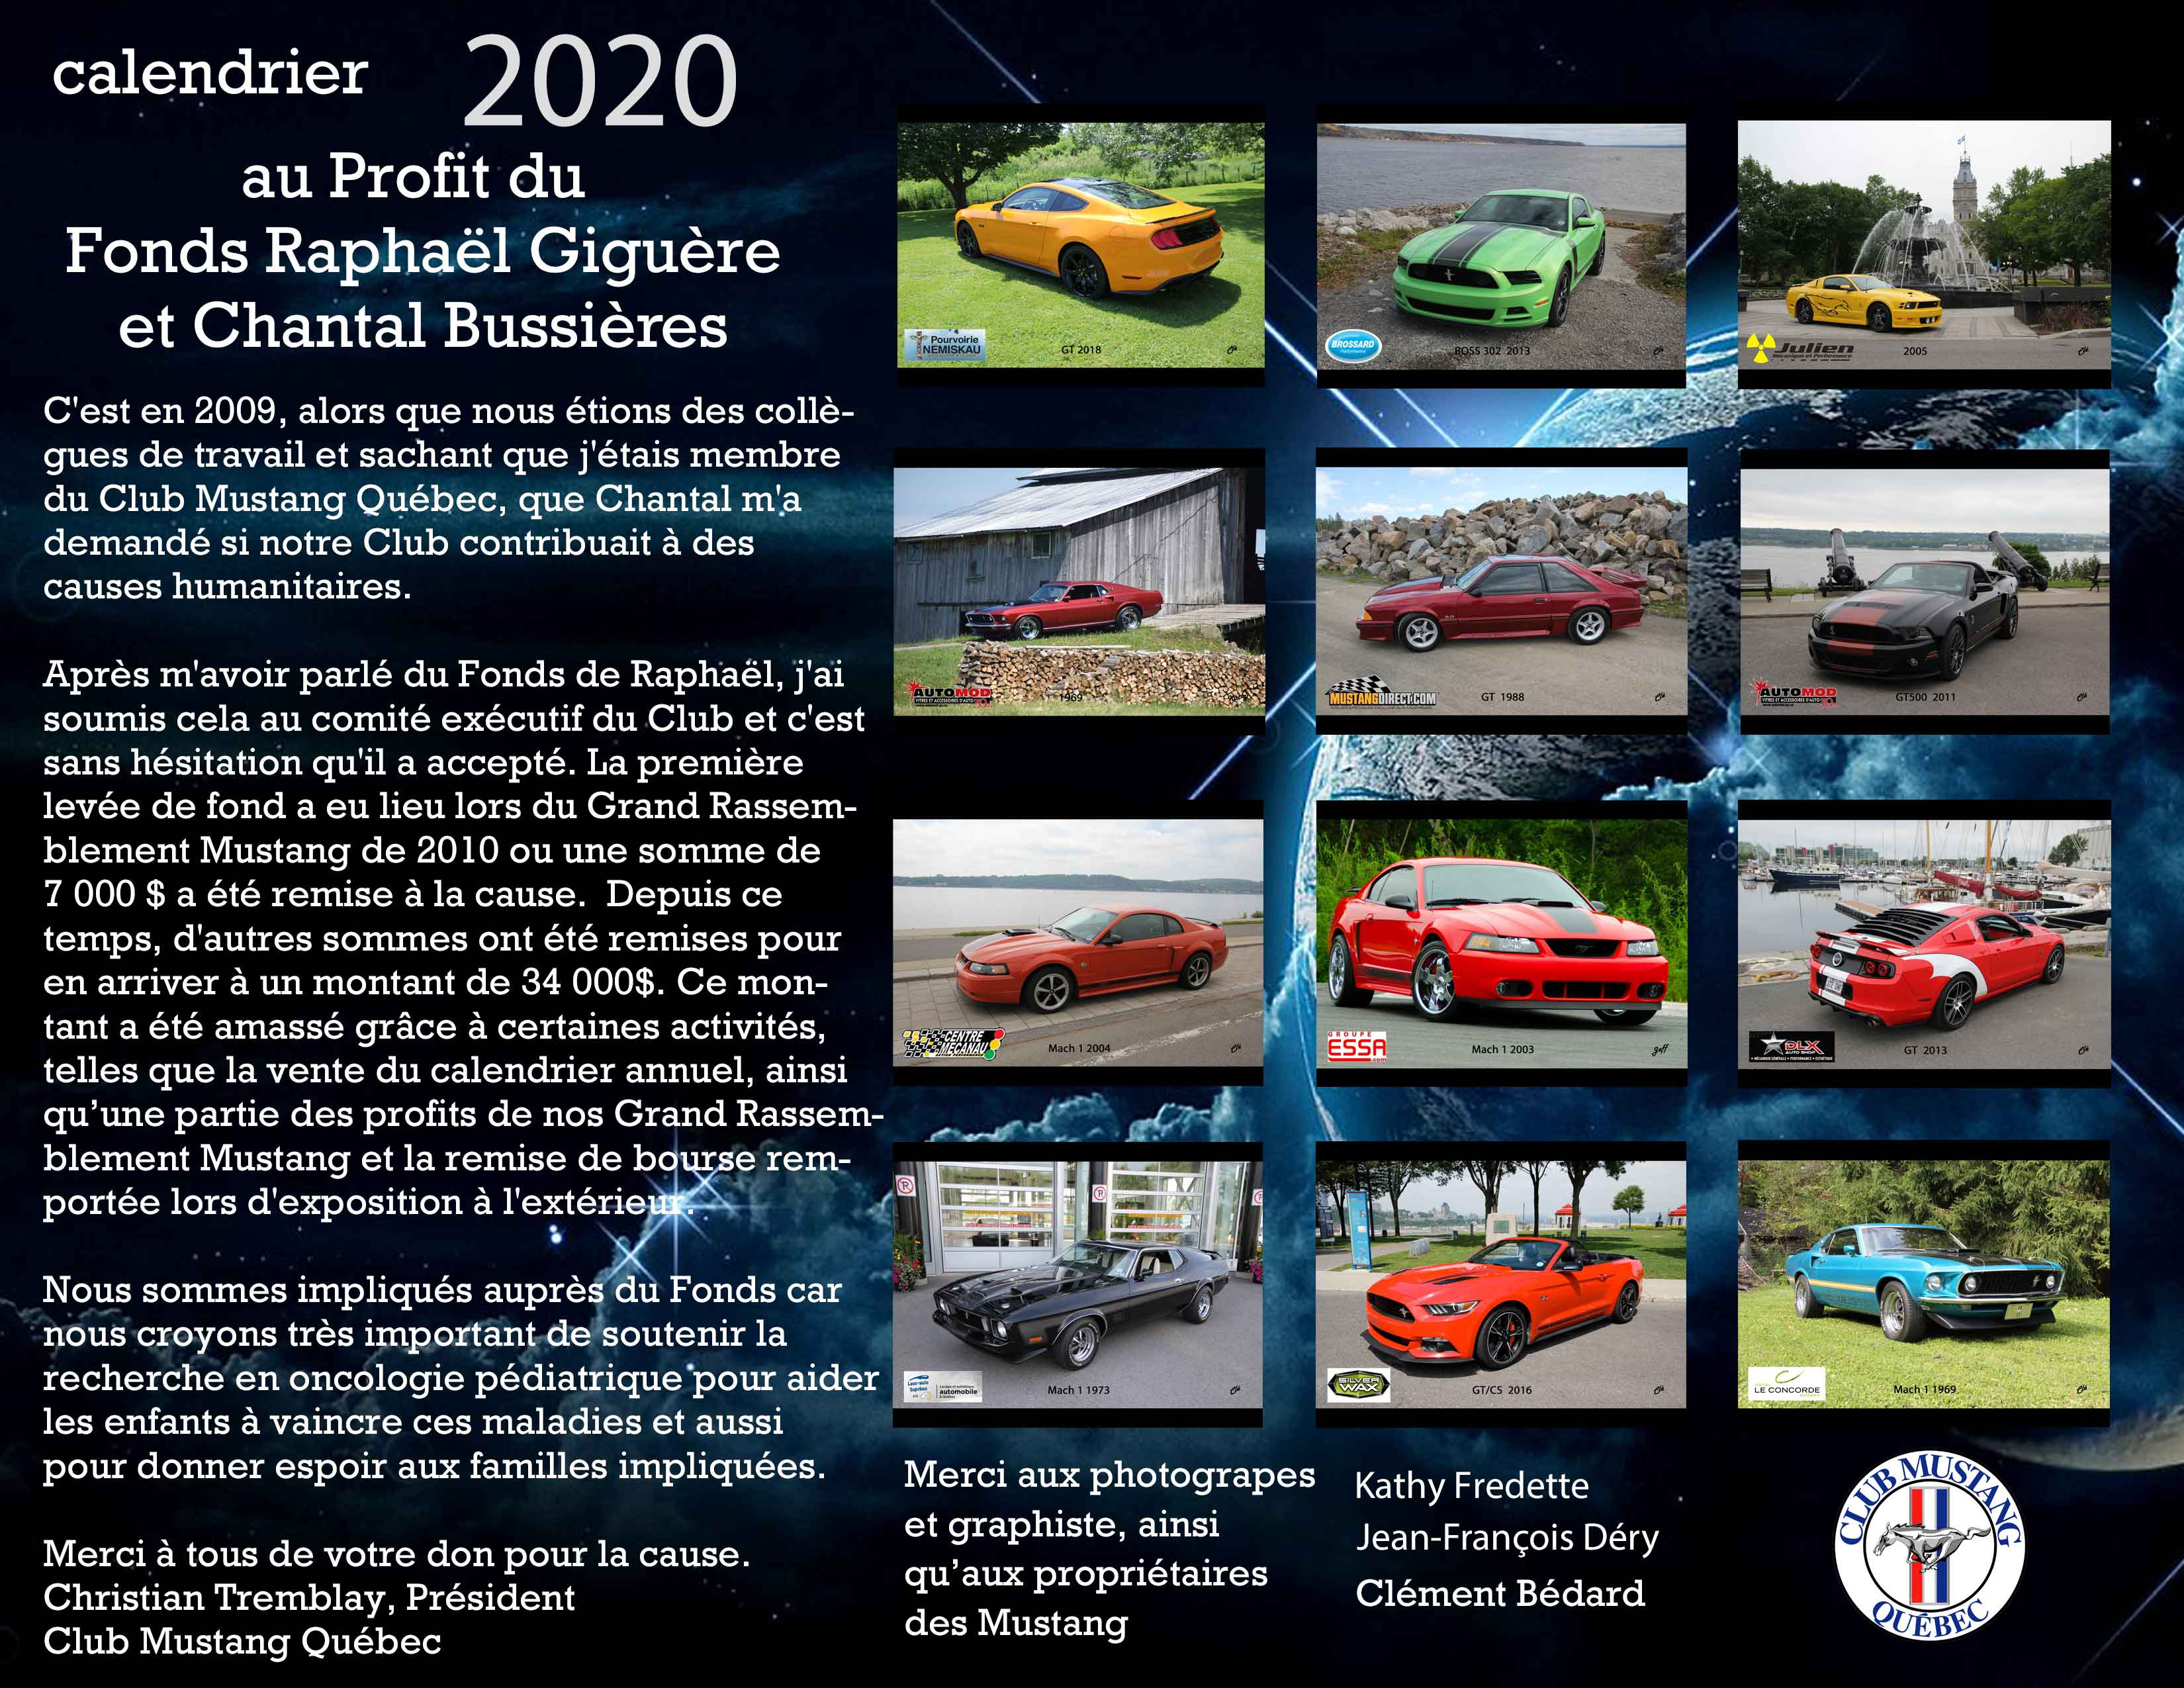 Partager Calendrier Outlook 2020.Calendrier 2020 Club Mustang Quebec